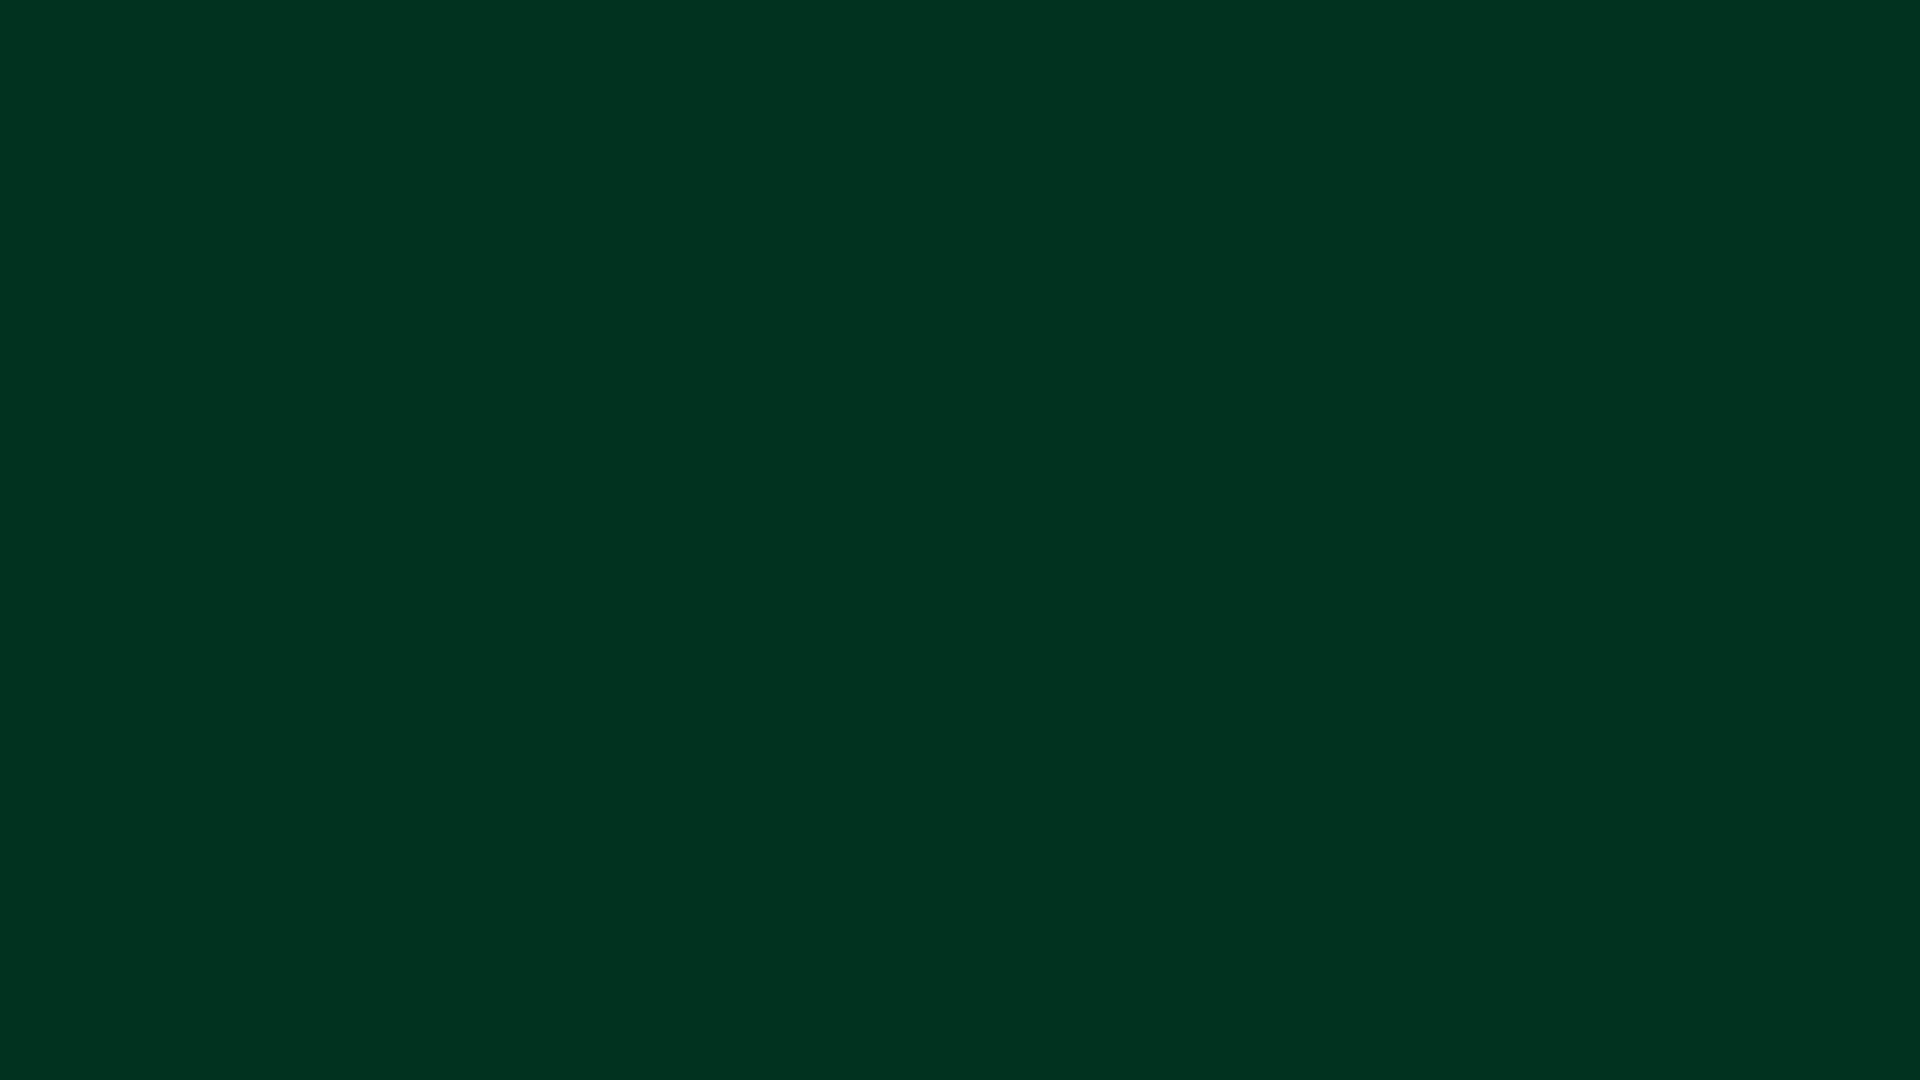 1920x1080 Dark Green Solid Color Background 1920x1080